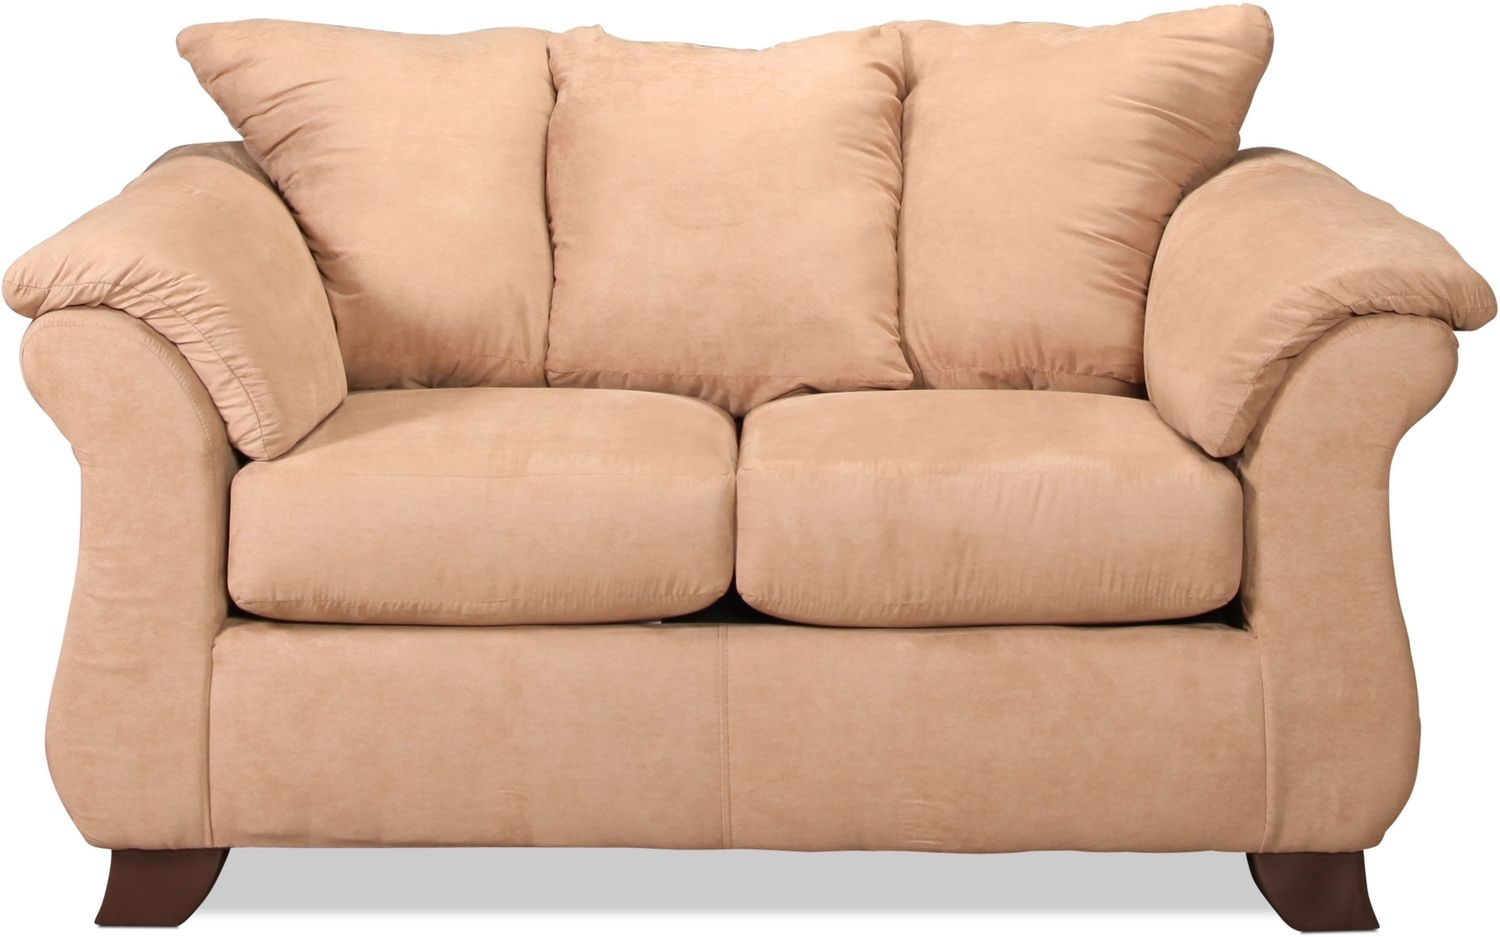 Shelby Loveseat - Camel